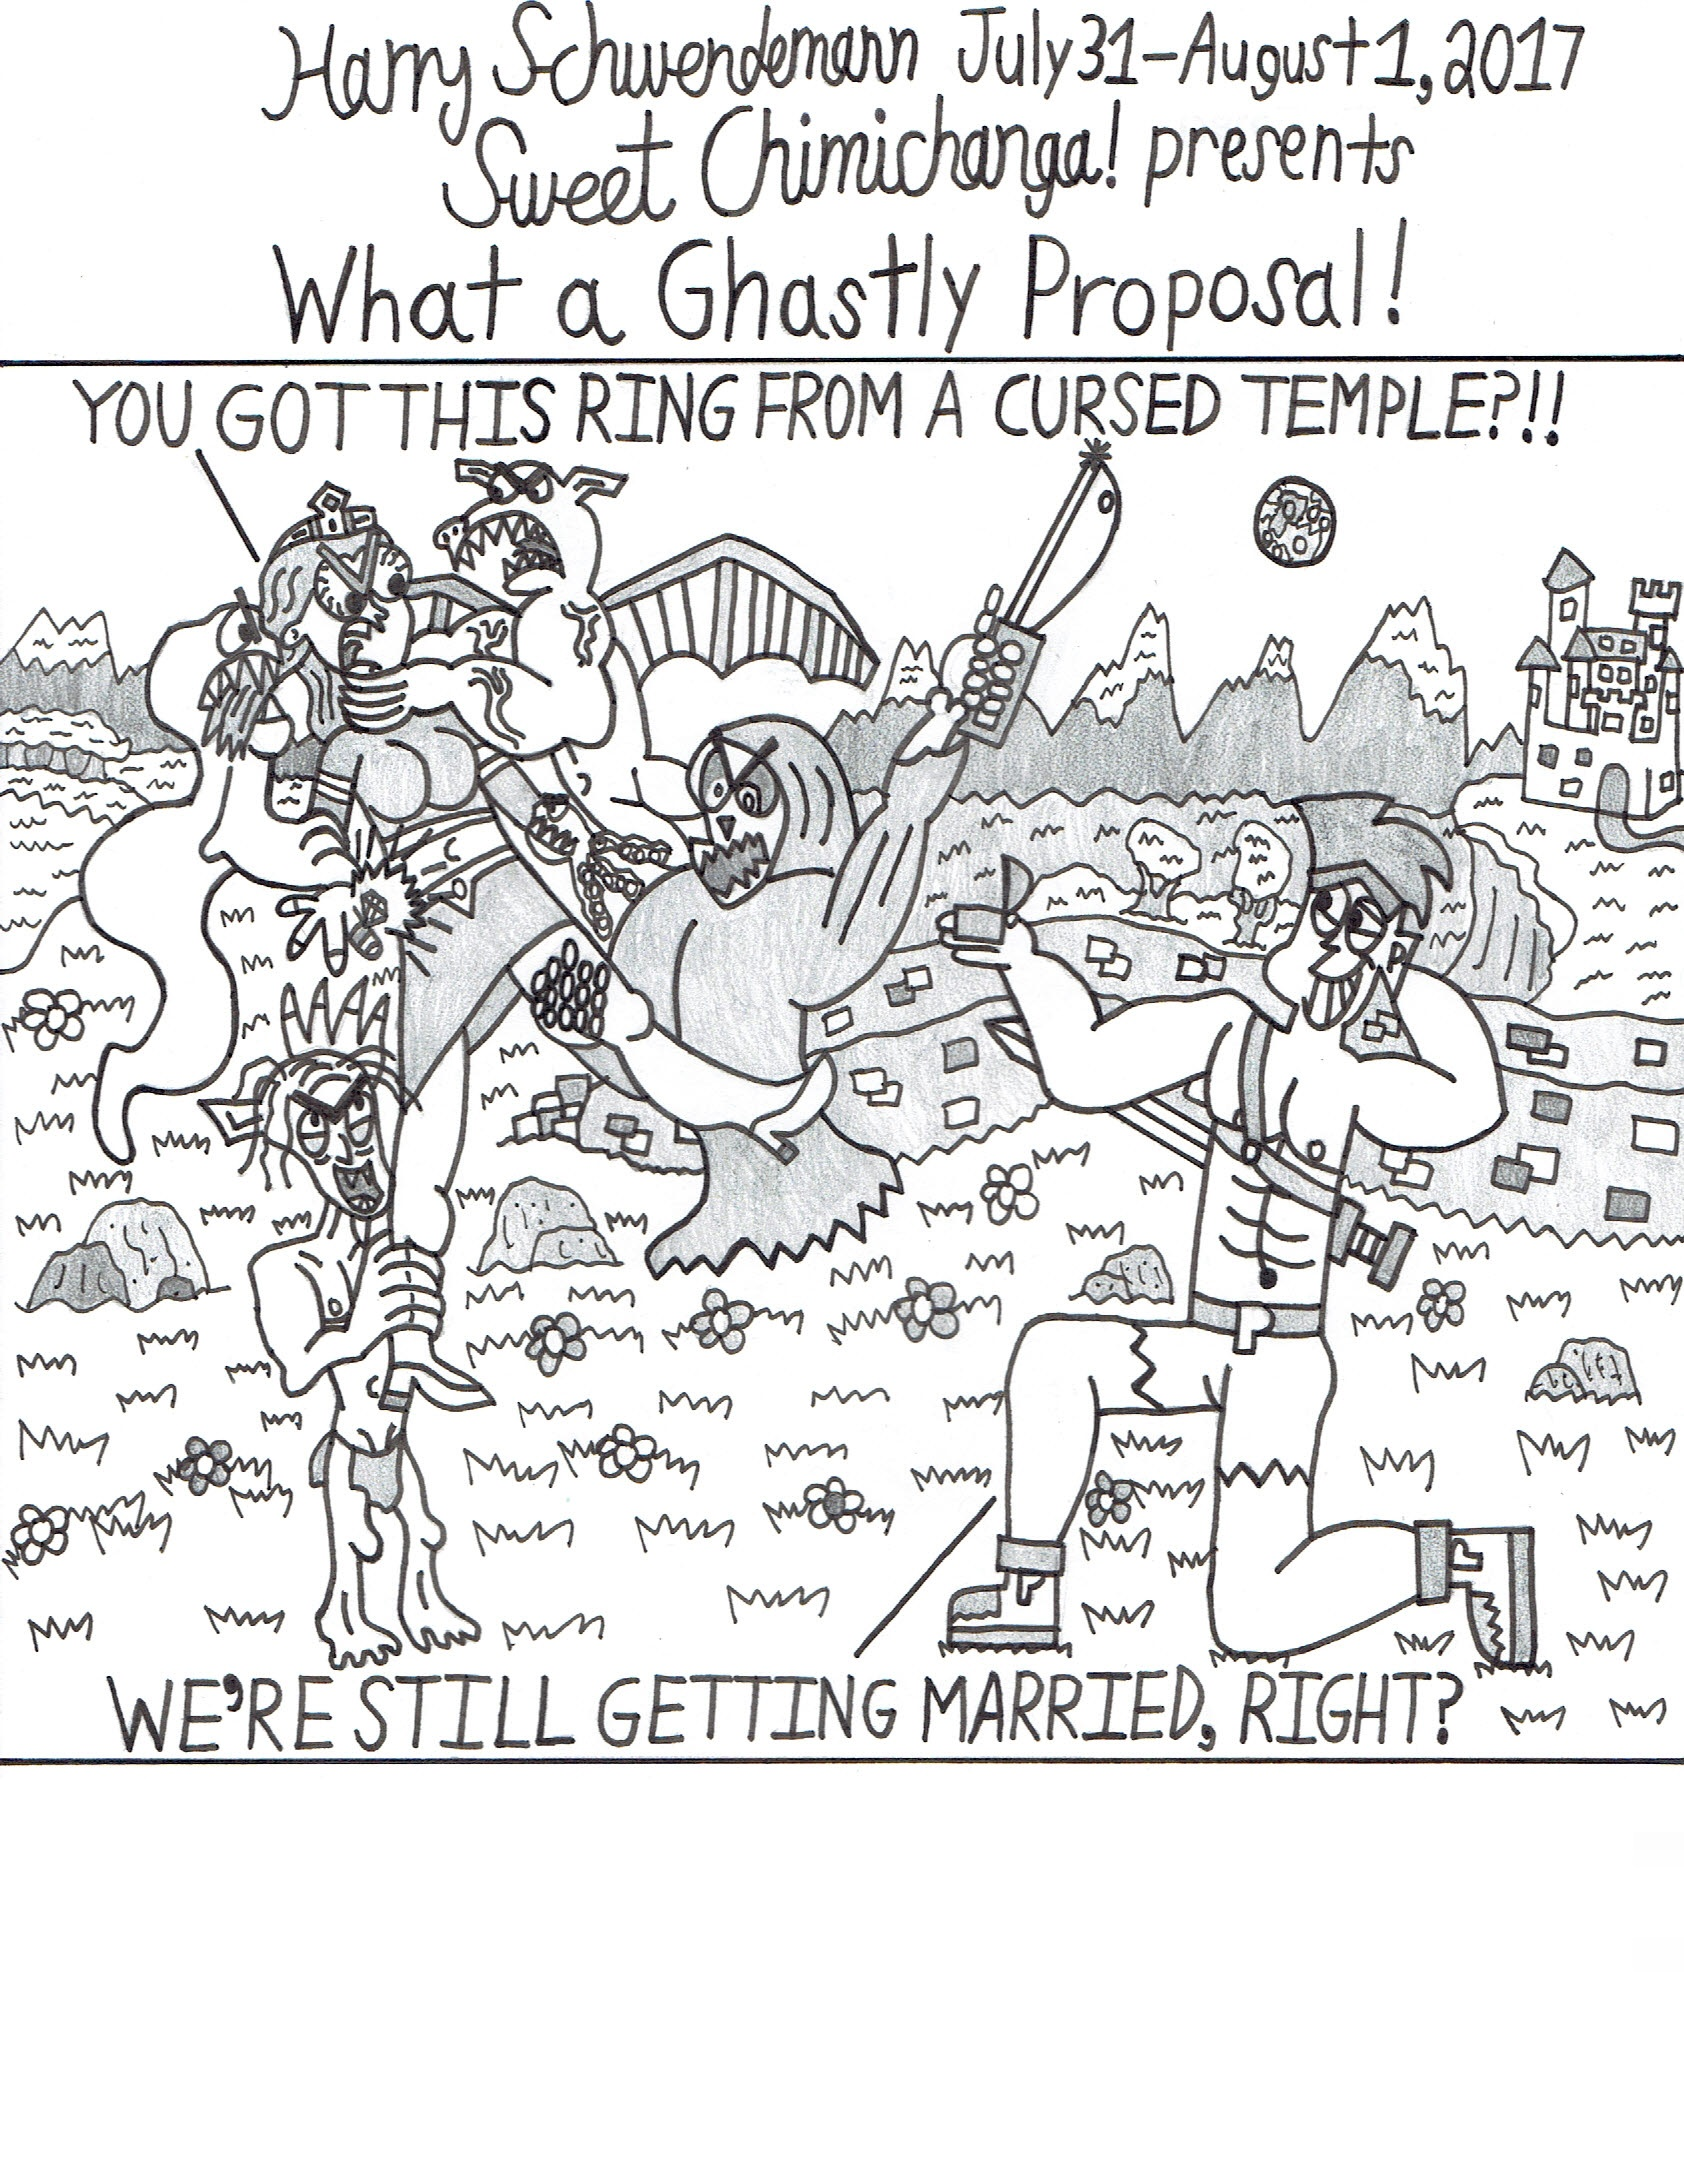 What a Ghastly Proposal!